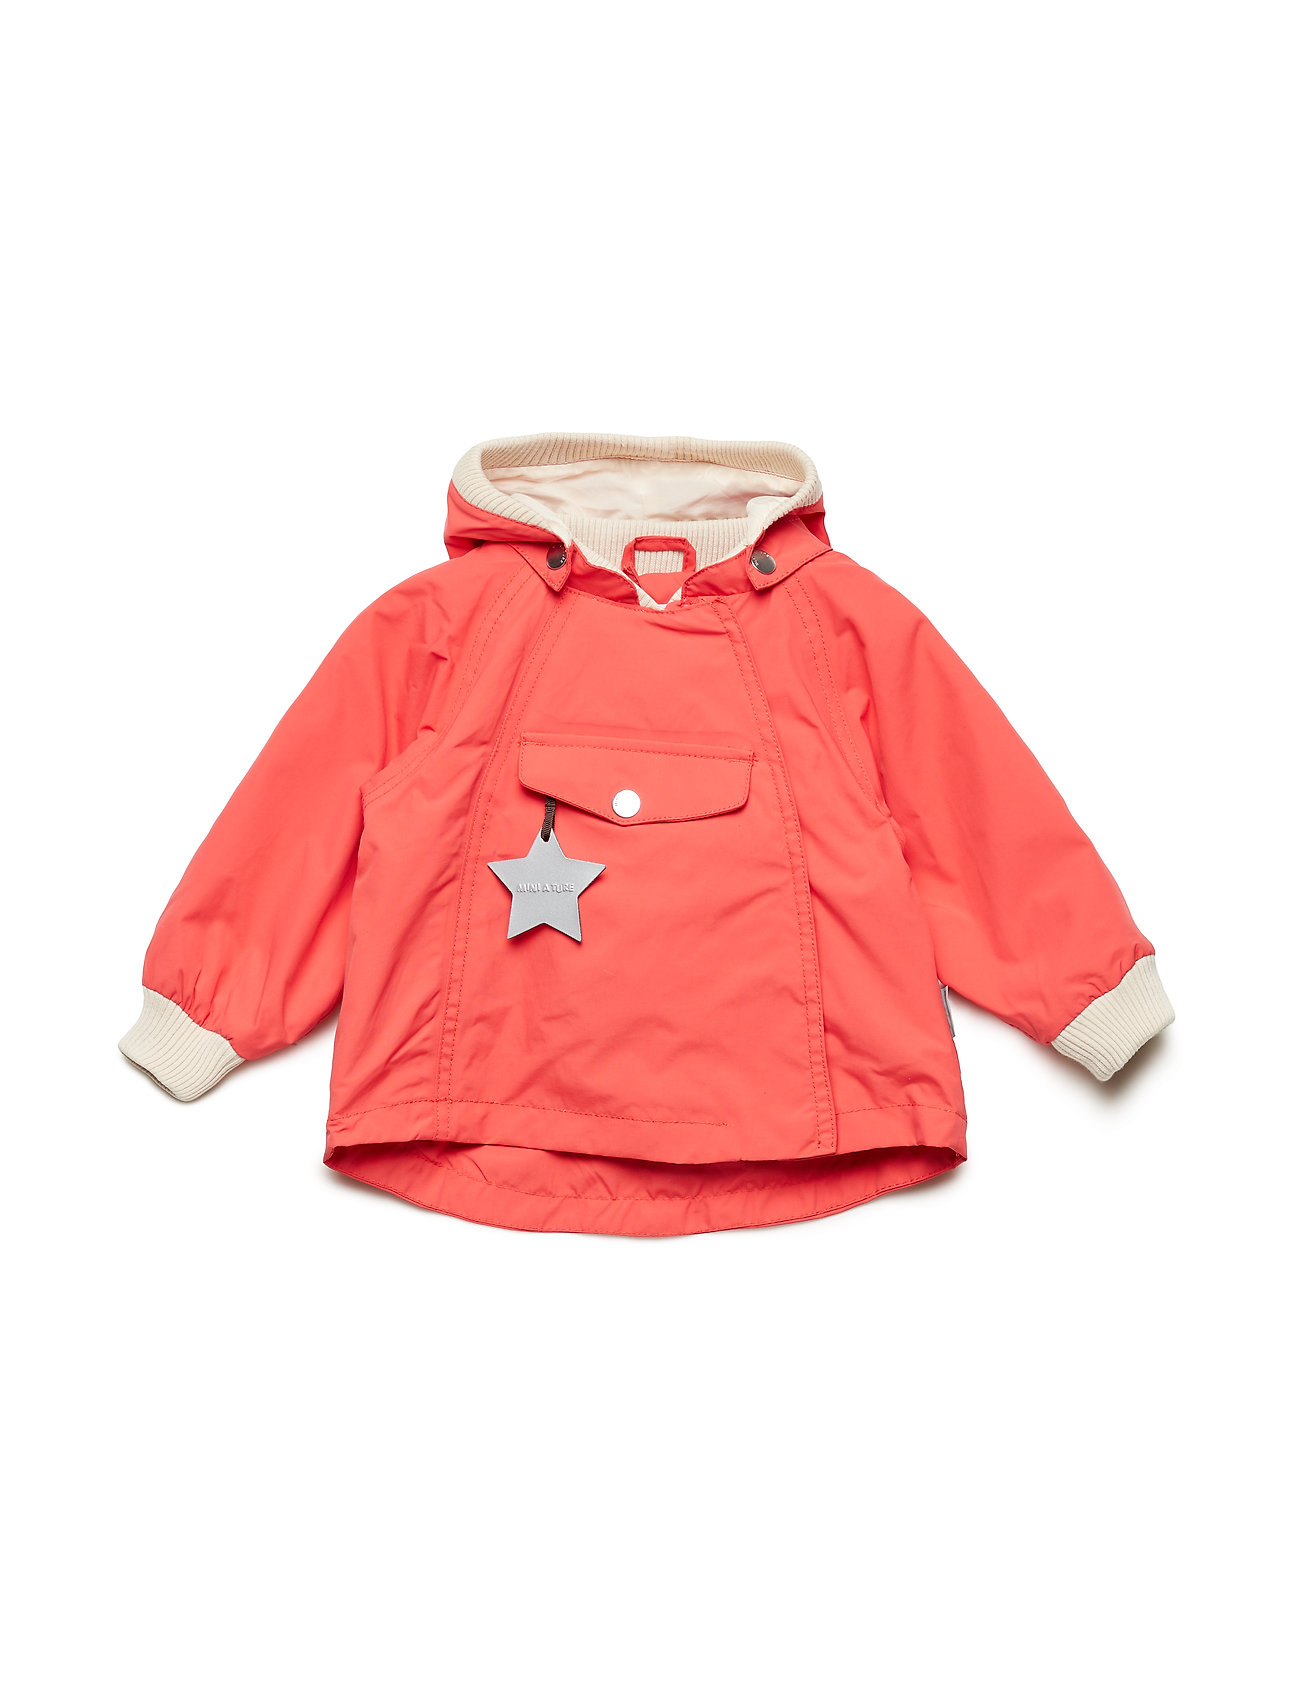 Mini A Ture Wai Jacket, M - BITTER SWEET RED